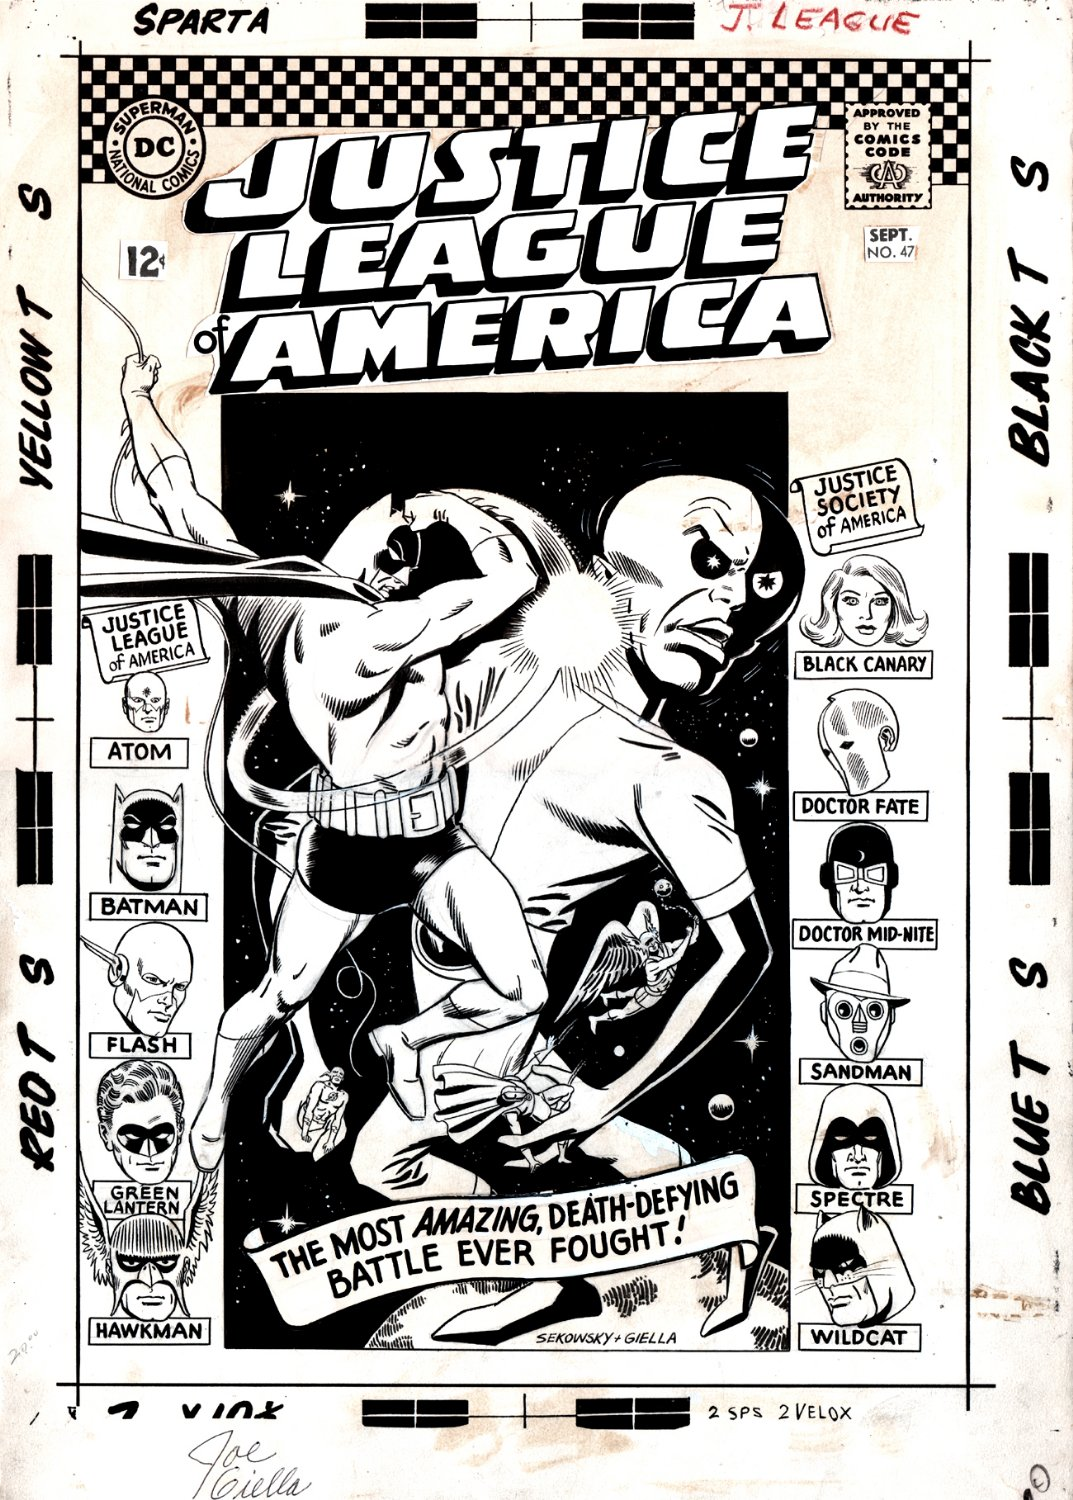 Justice League of America #47 Cover (JUSTICE SOCIETY OF AMERICA CROSS-OVER) Large Art - 1966